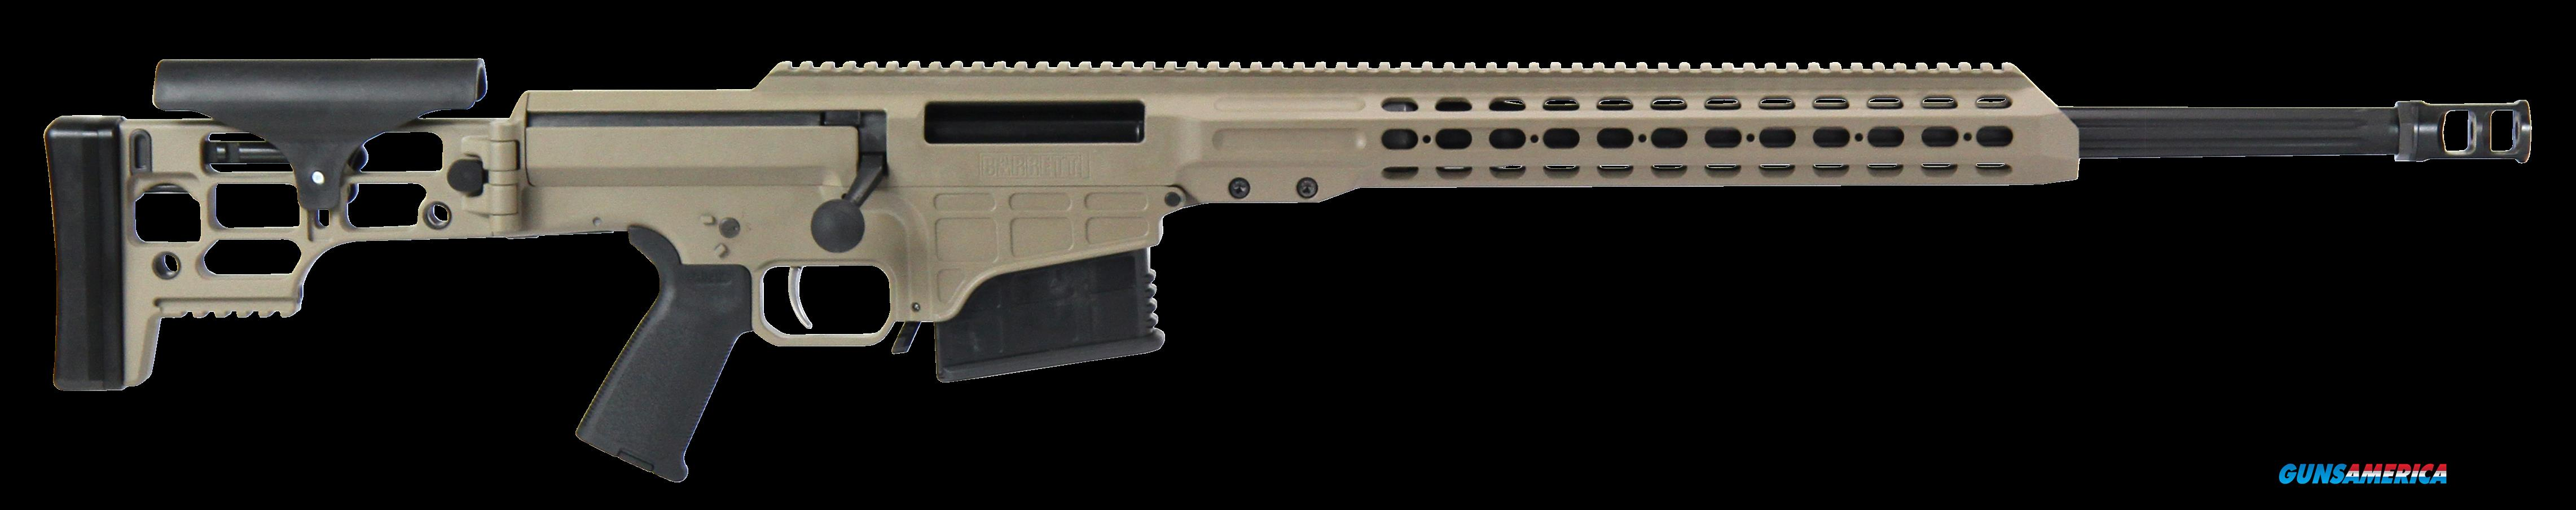 "Barrett 14374 MRAD Bolt 338 Lapua Magnum 24"" 10+1 Folding Flat Dark Earth Stk FDE/Blk  Guns > Rifles > Barrett Rifles"